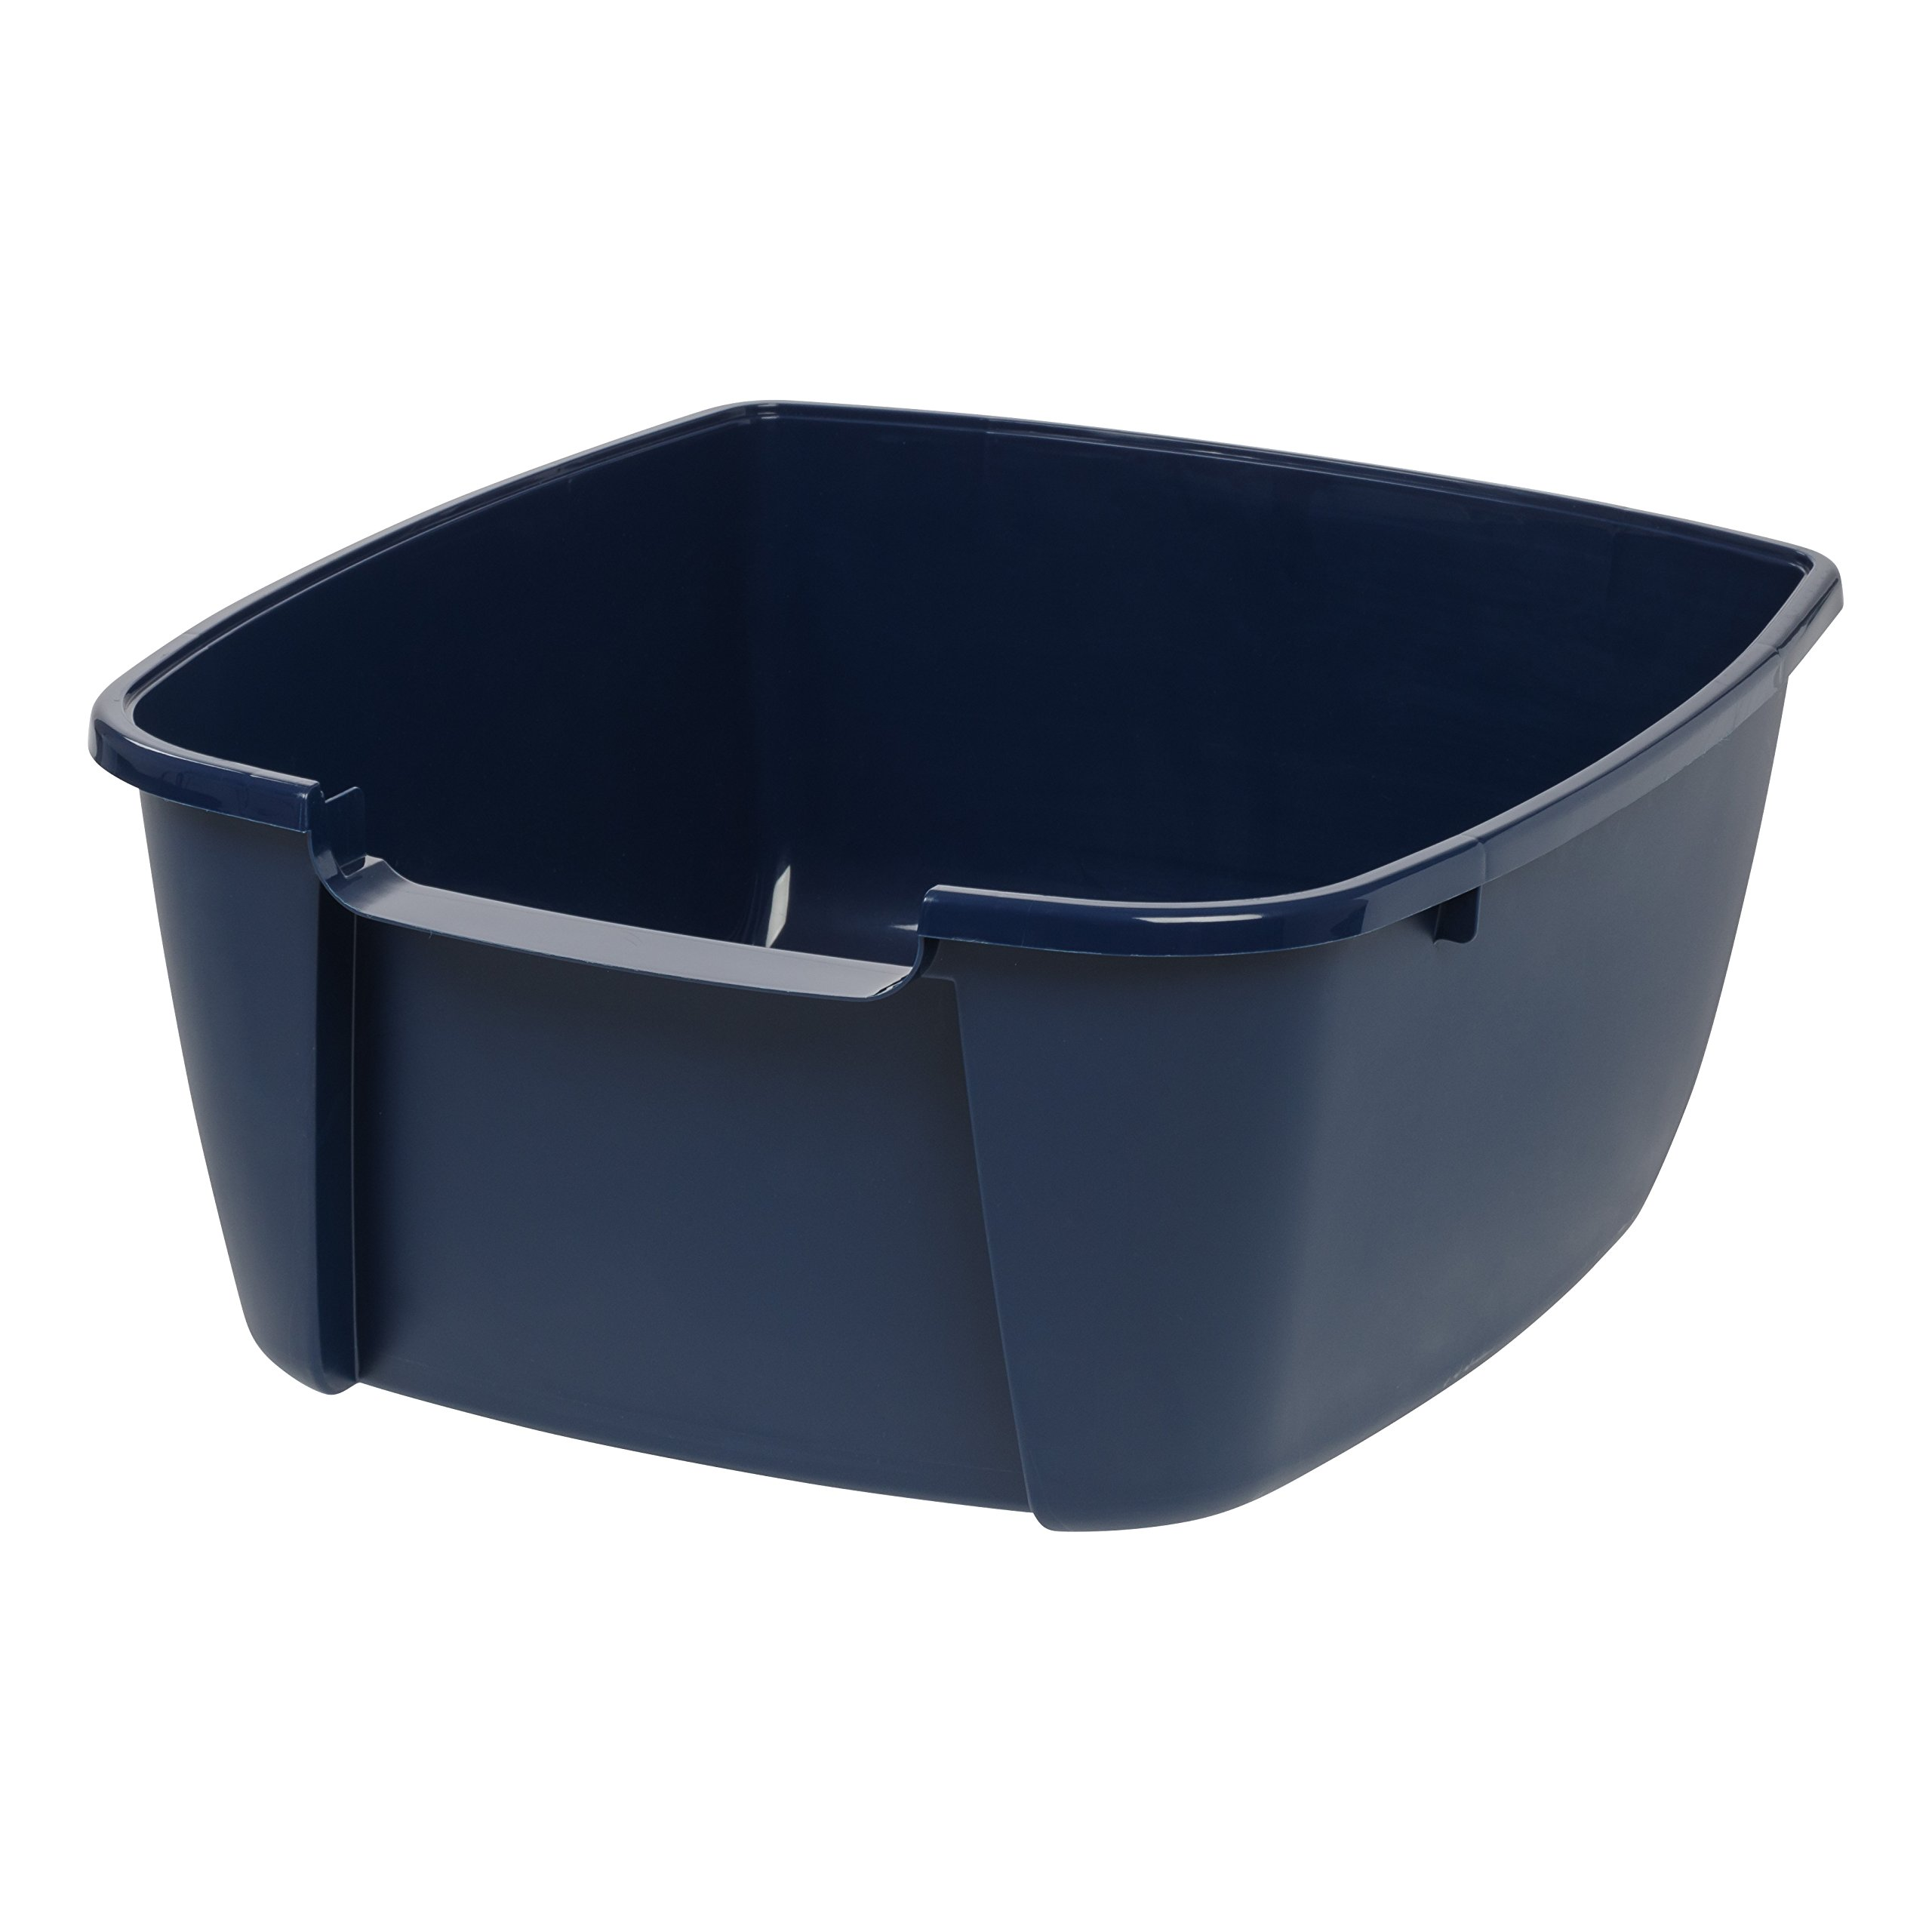 IRIS Jumbo Litter Box with Scoop, Navy